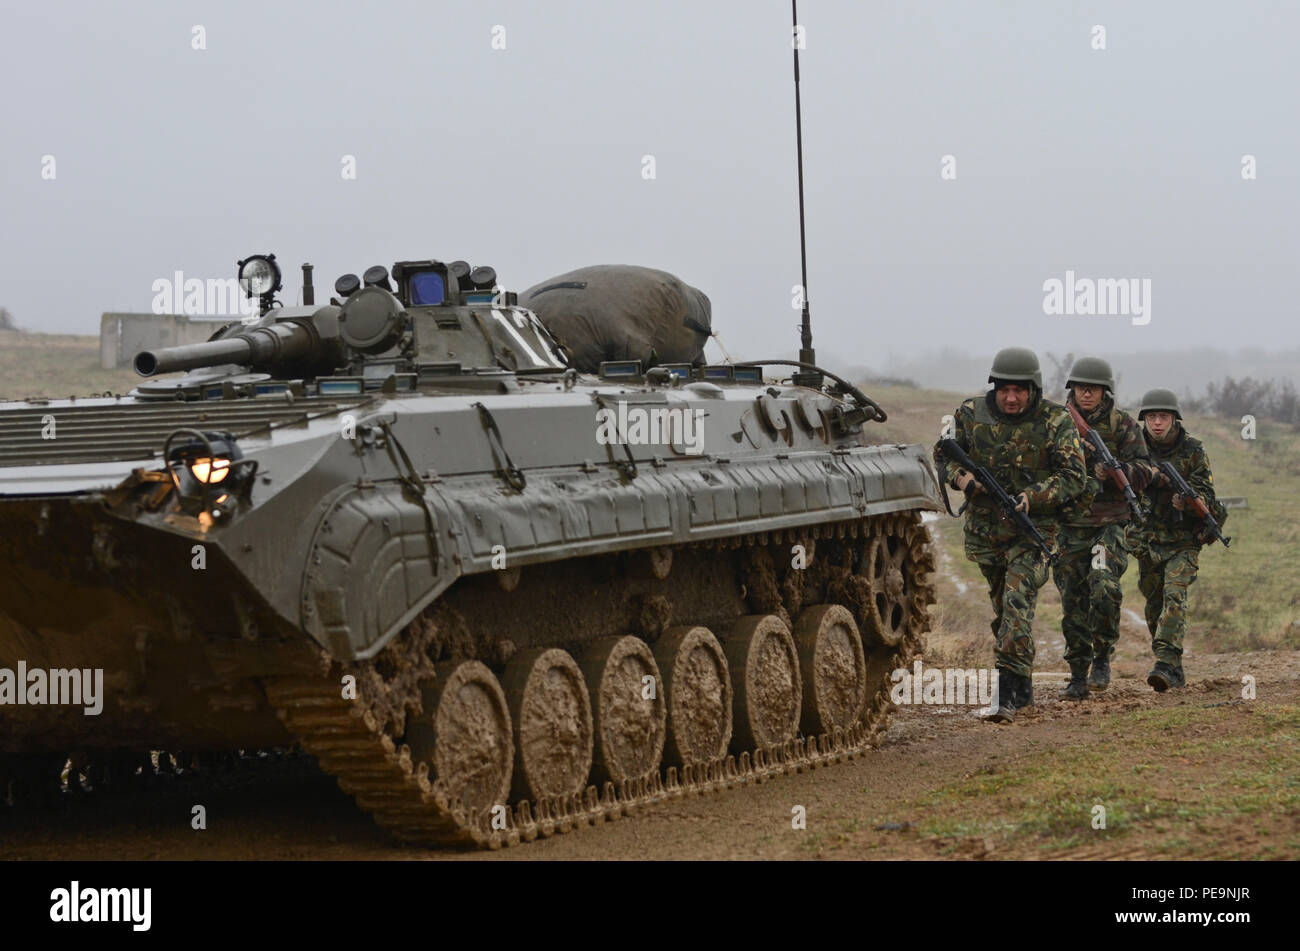 Bulgarian Soldiers of 1-61st Mechanized Battalion follow a Boyevaya Mashina Pekhoty 1 (BMP -1) through the muddy road during Exercise Peace Sentinel at Novo Selo Training Center, Bulgaria, Nov. 24, 2015. (U.S. Army photo by Staff Sgt. Steven M. Colvin/Released) - Stock Image